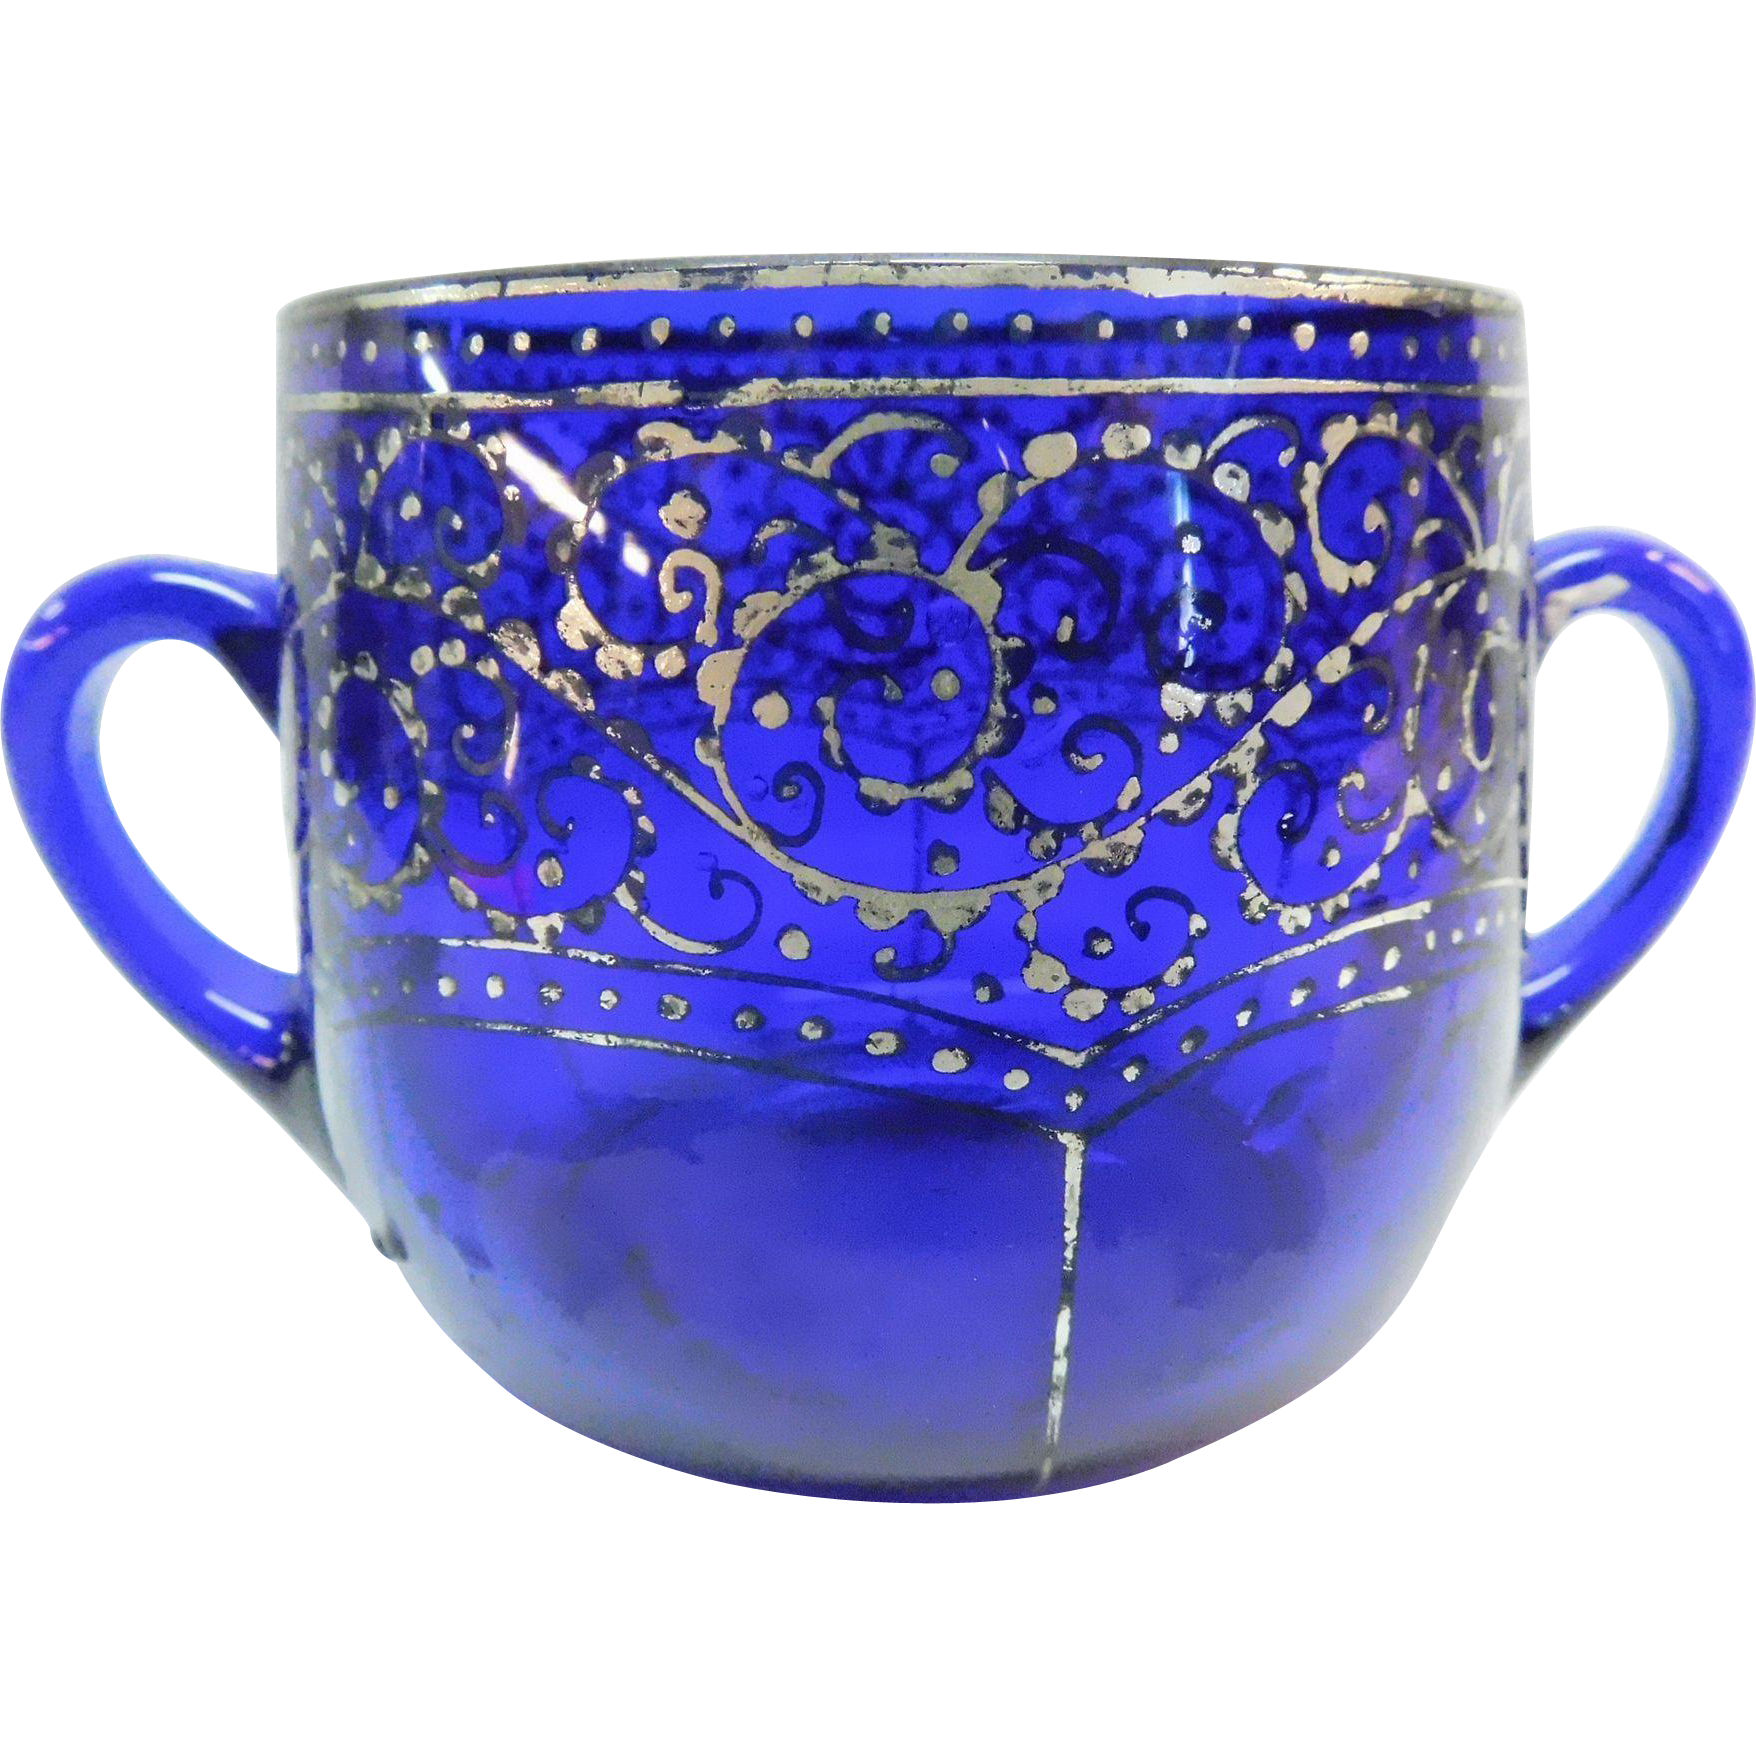 Cobalt Blue Sugar Bowl With Silver Overlay Czecho - Slovakia